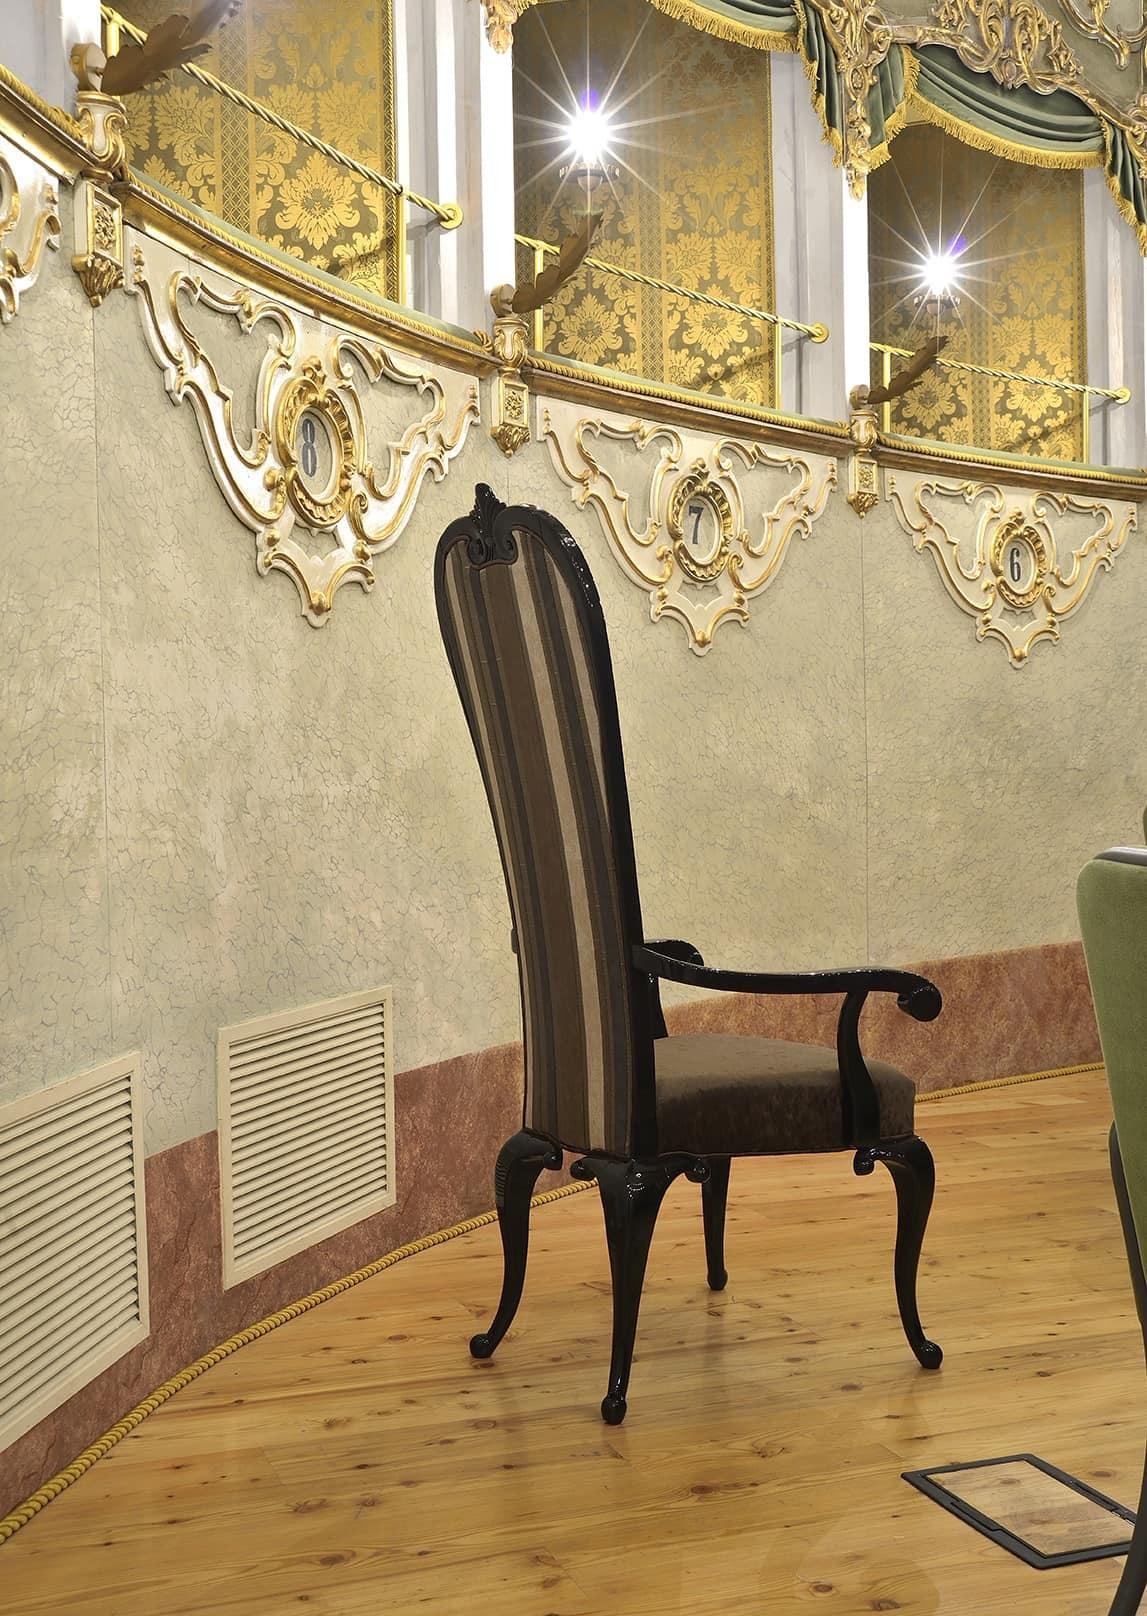 VIVIAR chair with armrests 8623A, Padded armchair, high back, neoclassical style